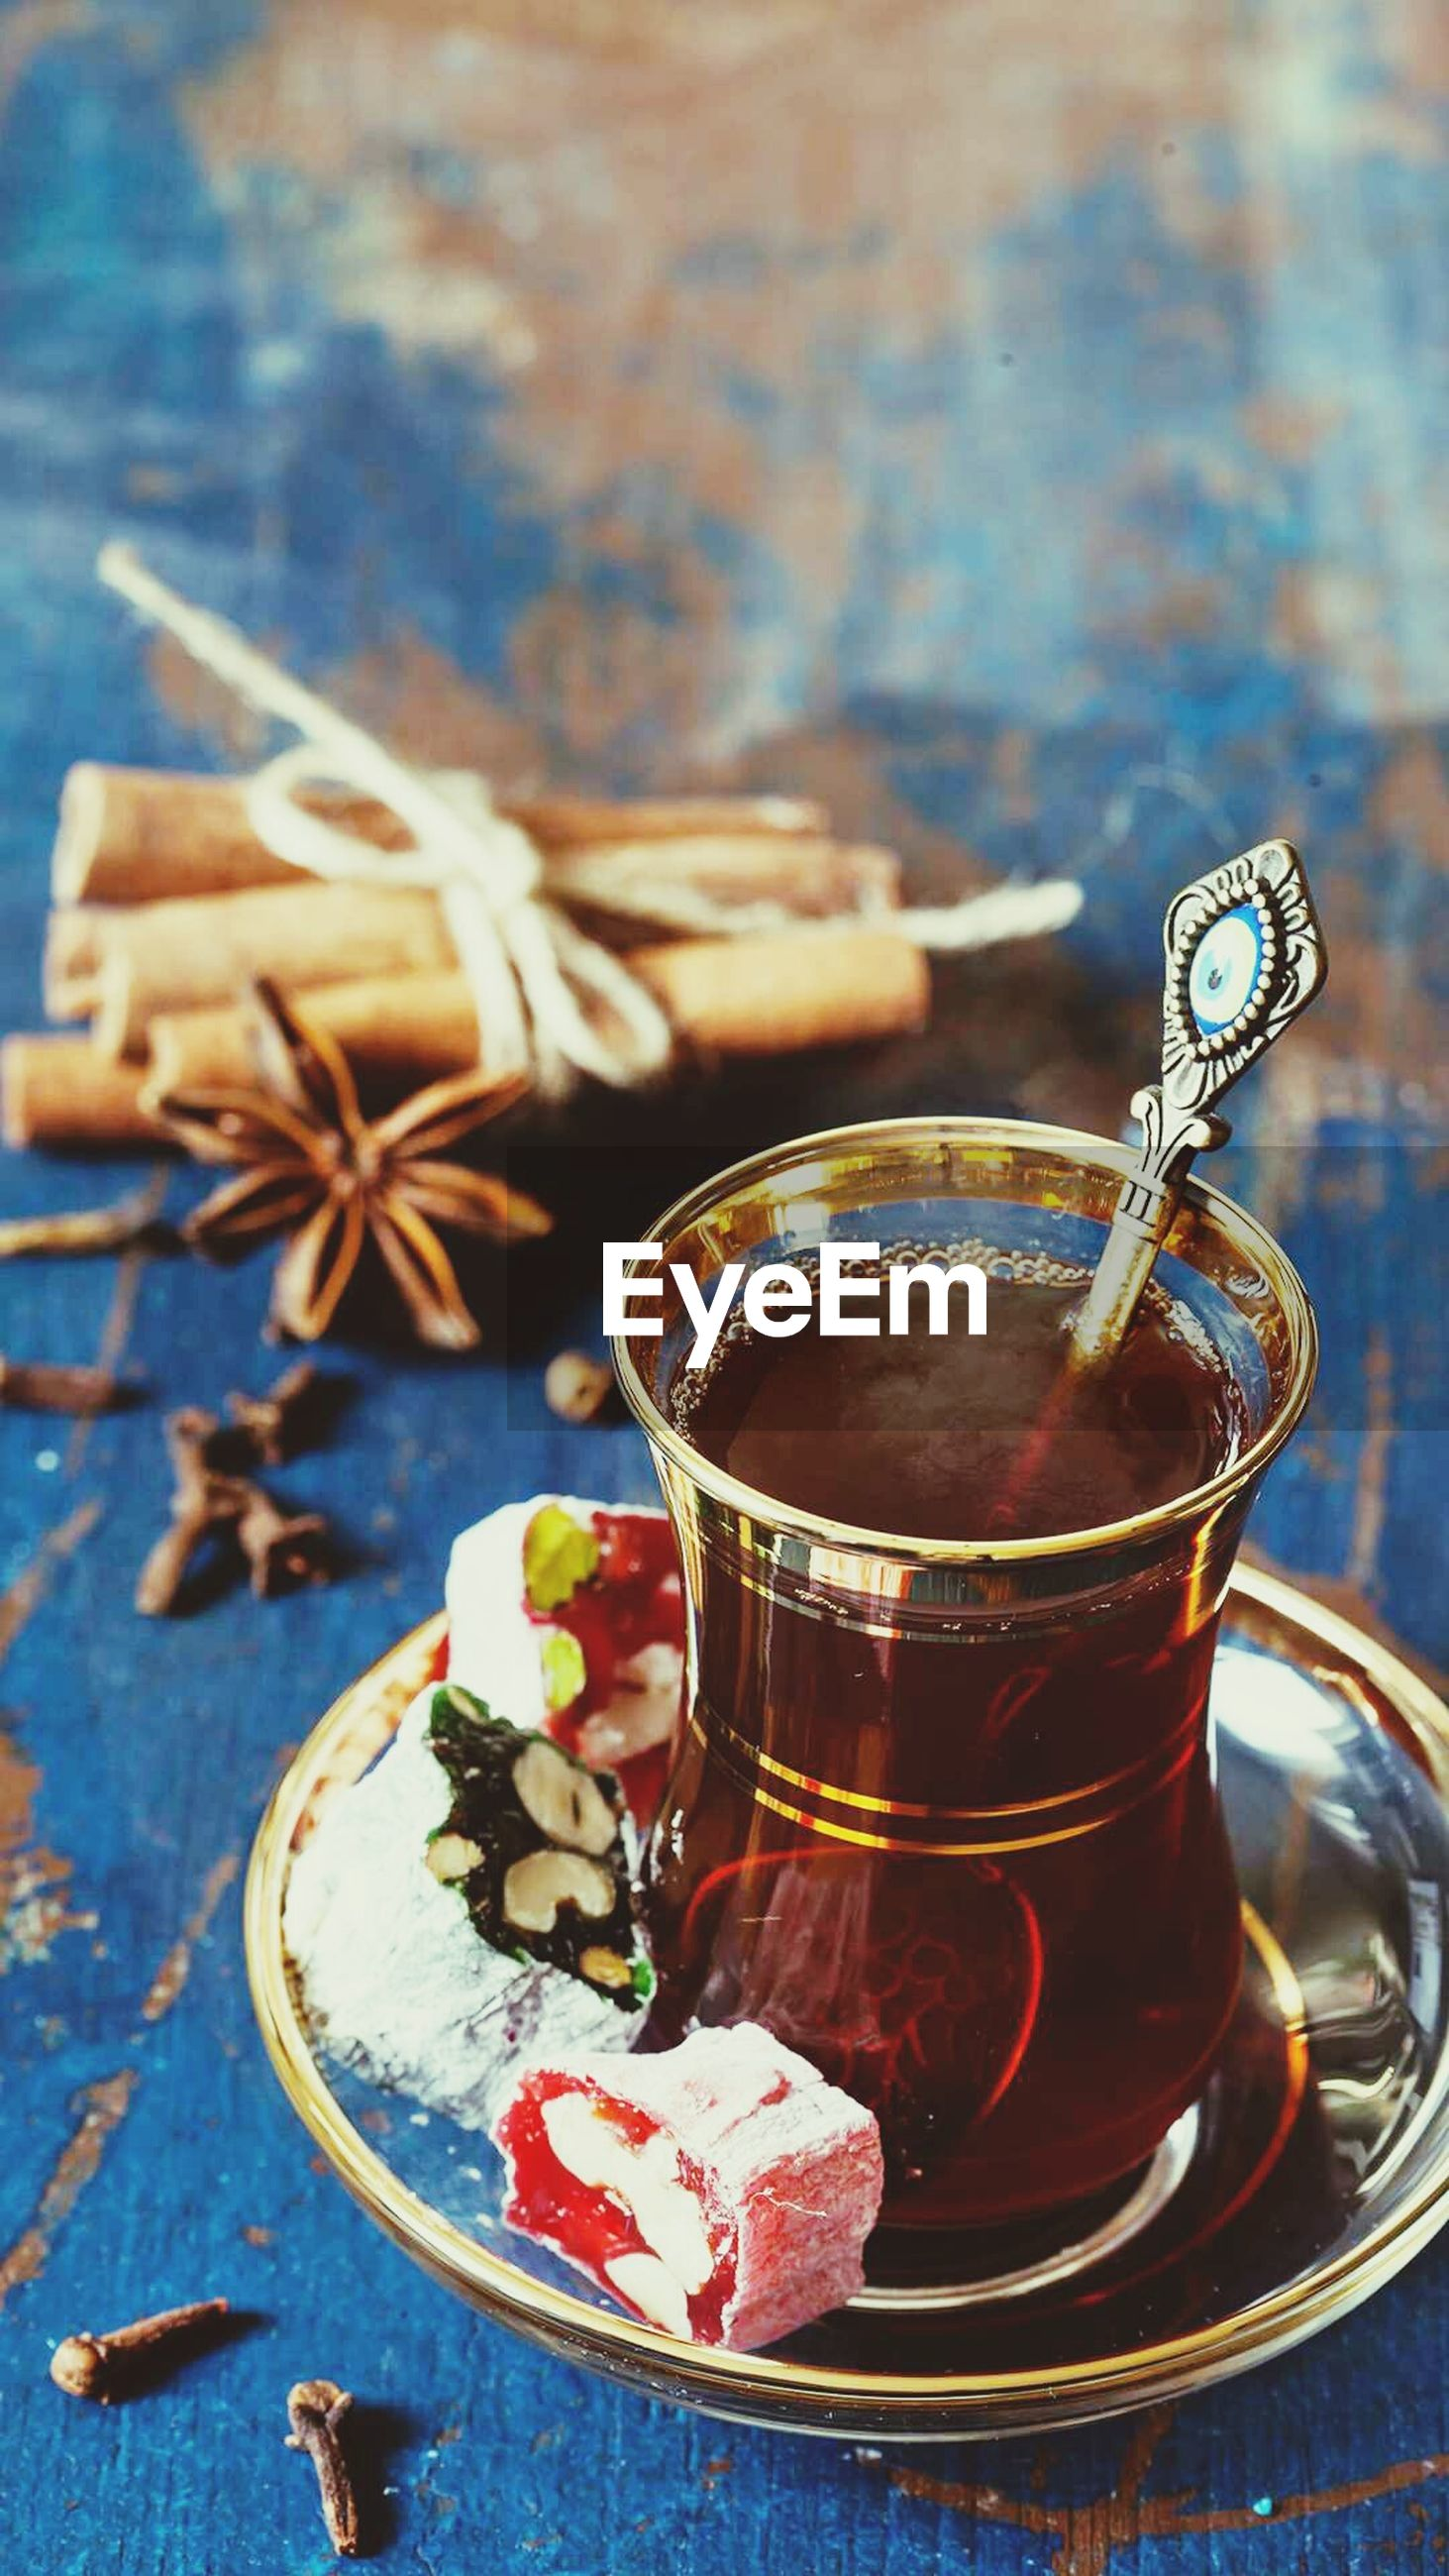 sweet food, food, tea - hot drink, drink, food and drink, dessert, close-up, star anise, indoors, no people, freshness, day